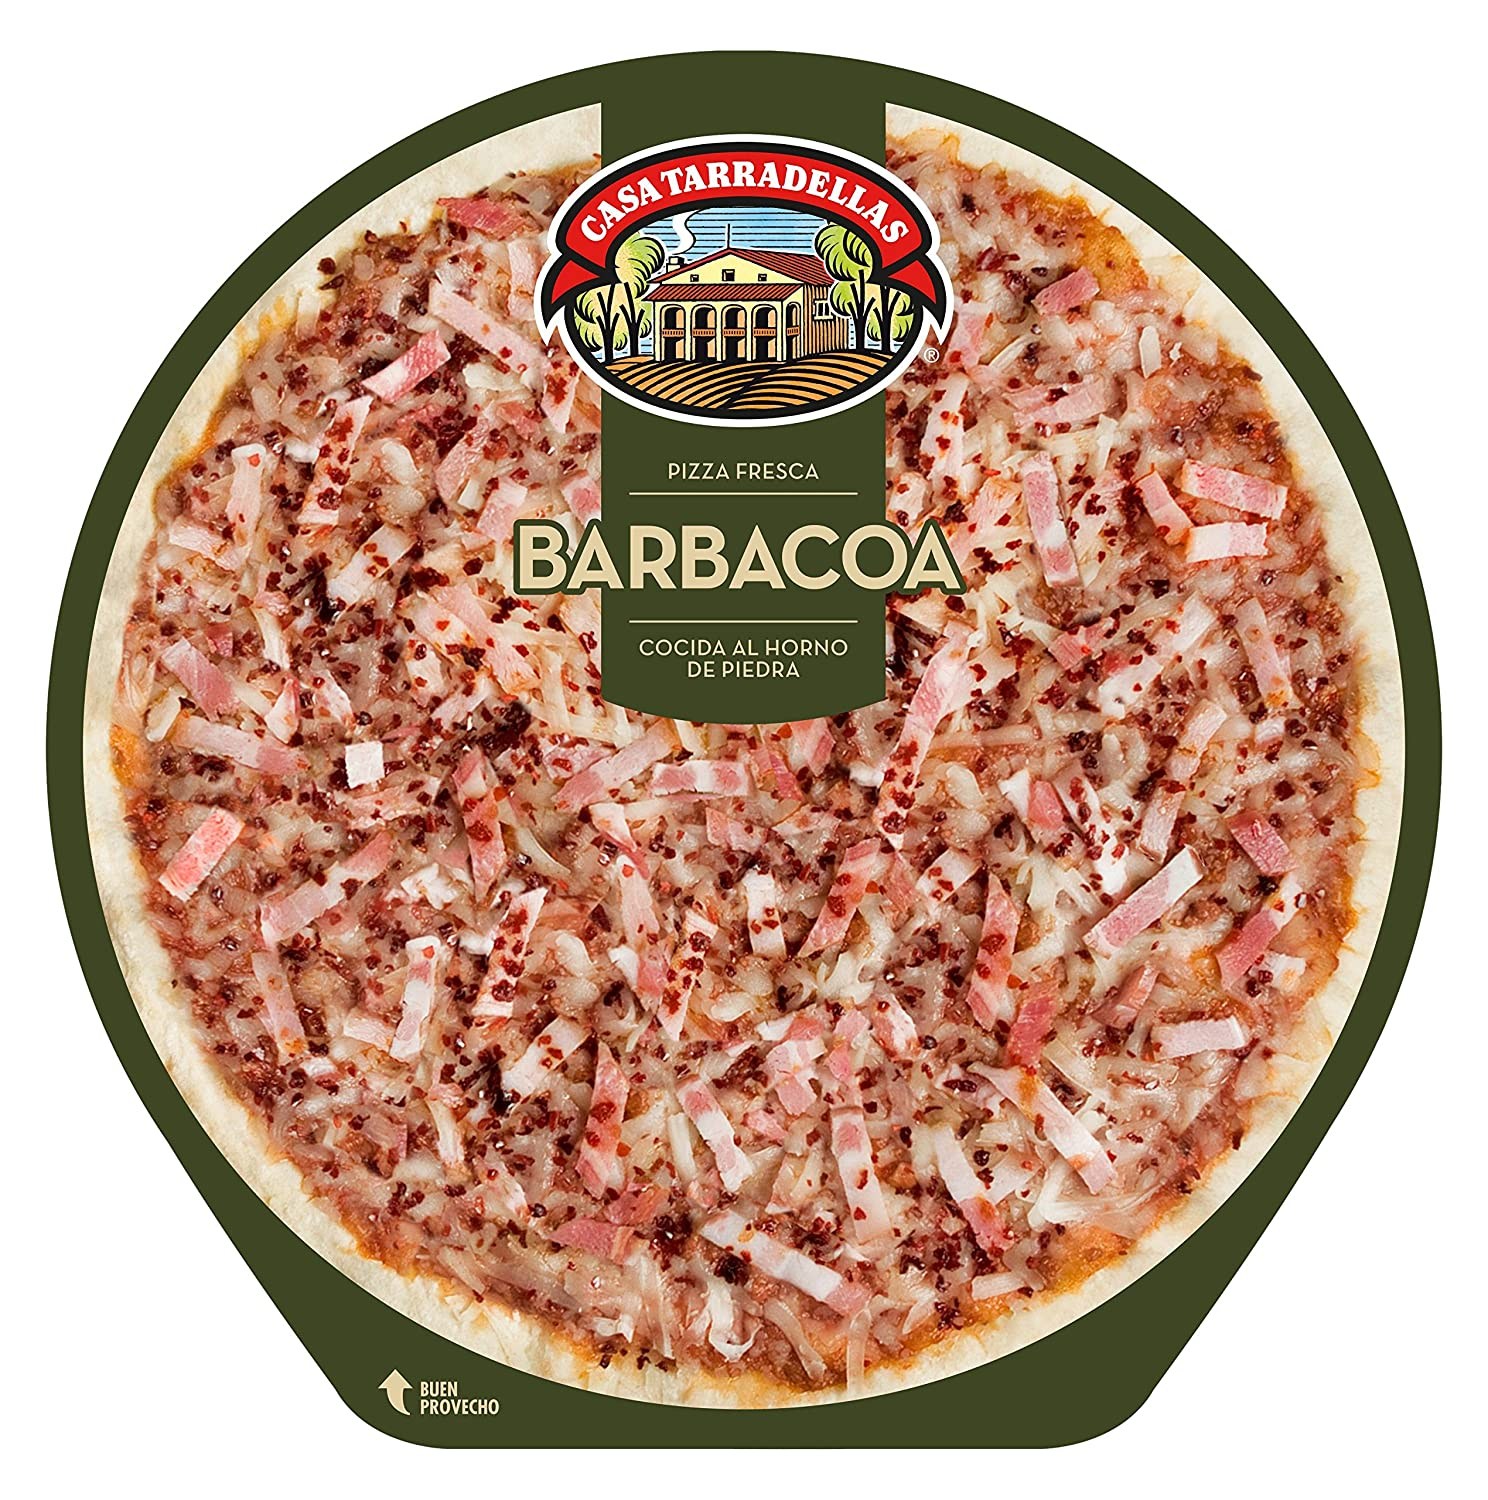 Casa Tarradellas - Pizza Fresca Barbacoa, 400 g: Amazon.es ...